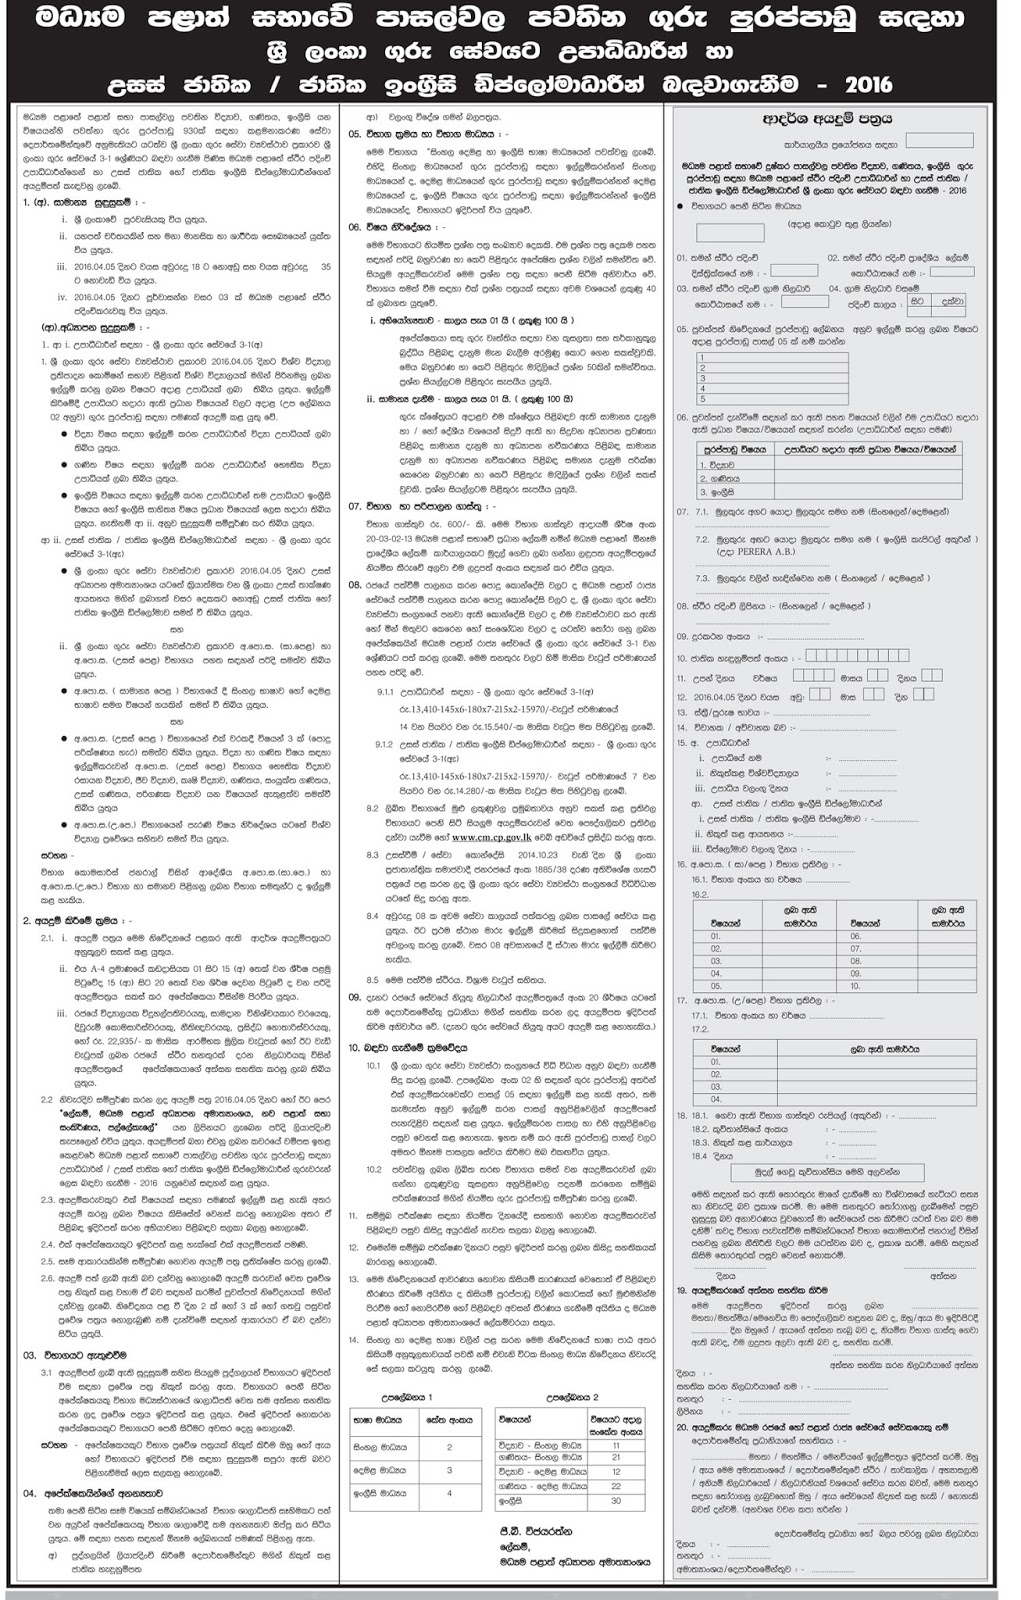 Vacancies - Sri Lanka Teachers of teachers in schools in the central province of graduates and higher national / recruitment English National Diploma